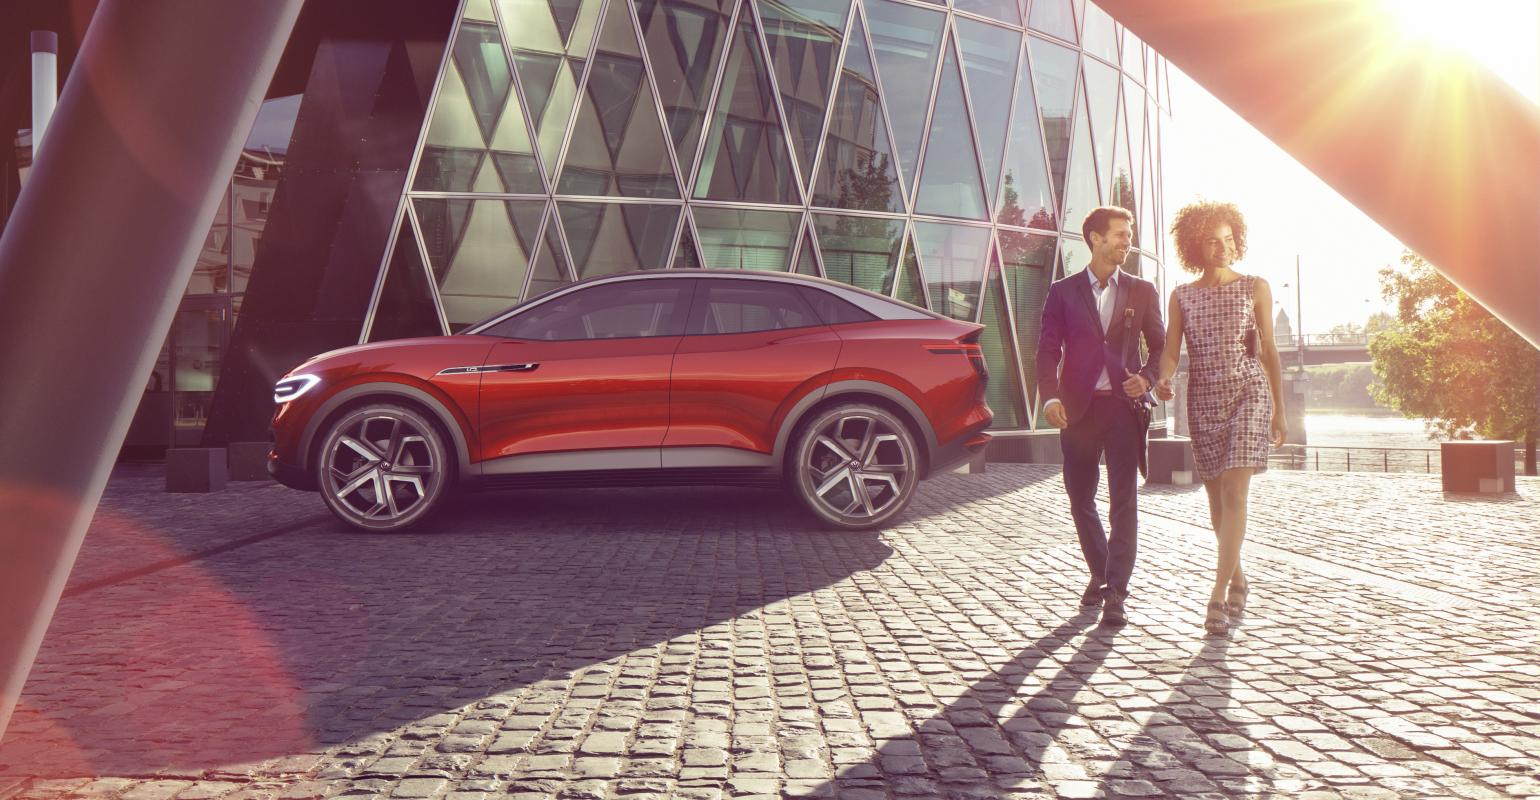 VW ID Crozz Electric Crossover SUV: Design, Release >> Vw S Electrification Drive Hits Speed Bump Wardsauto